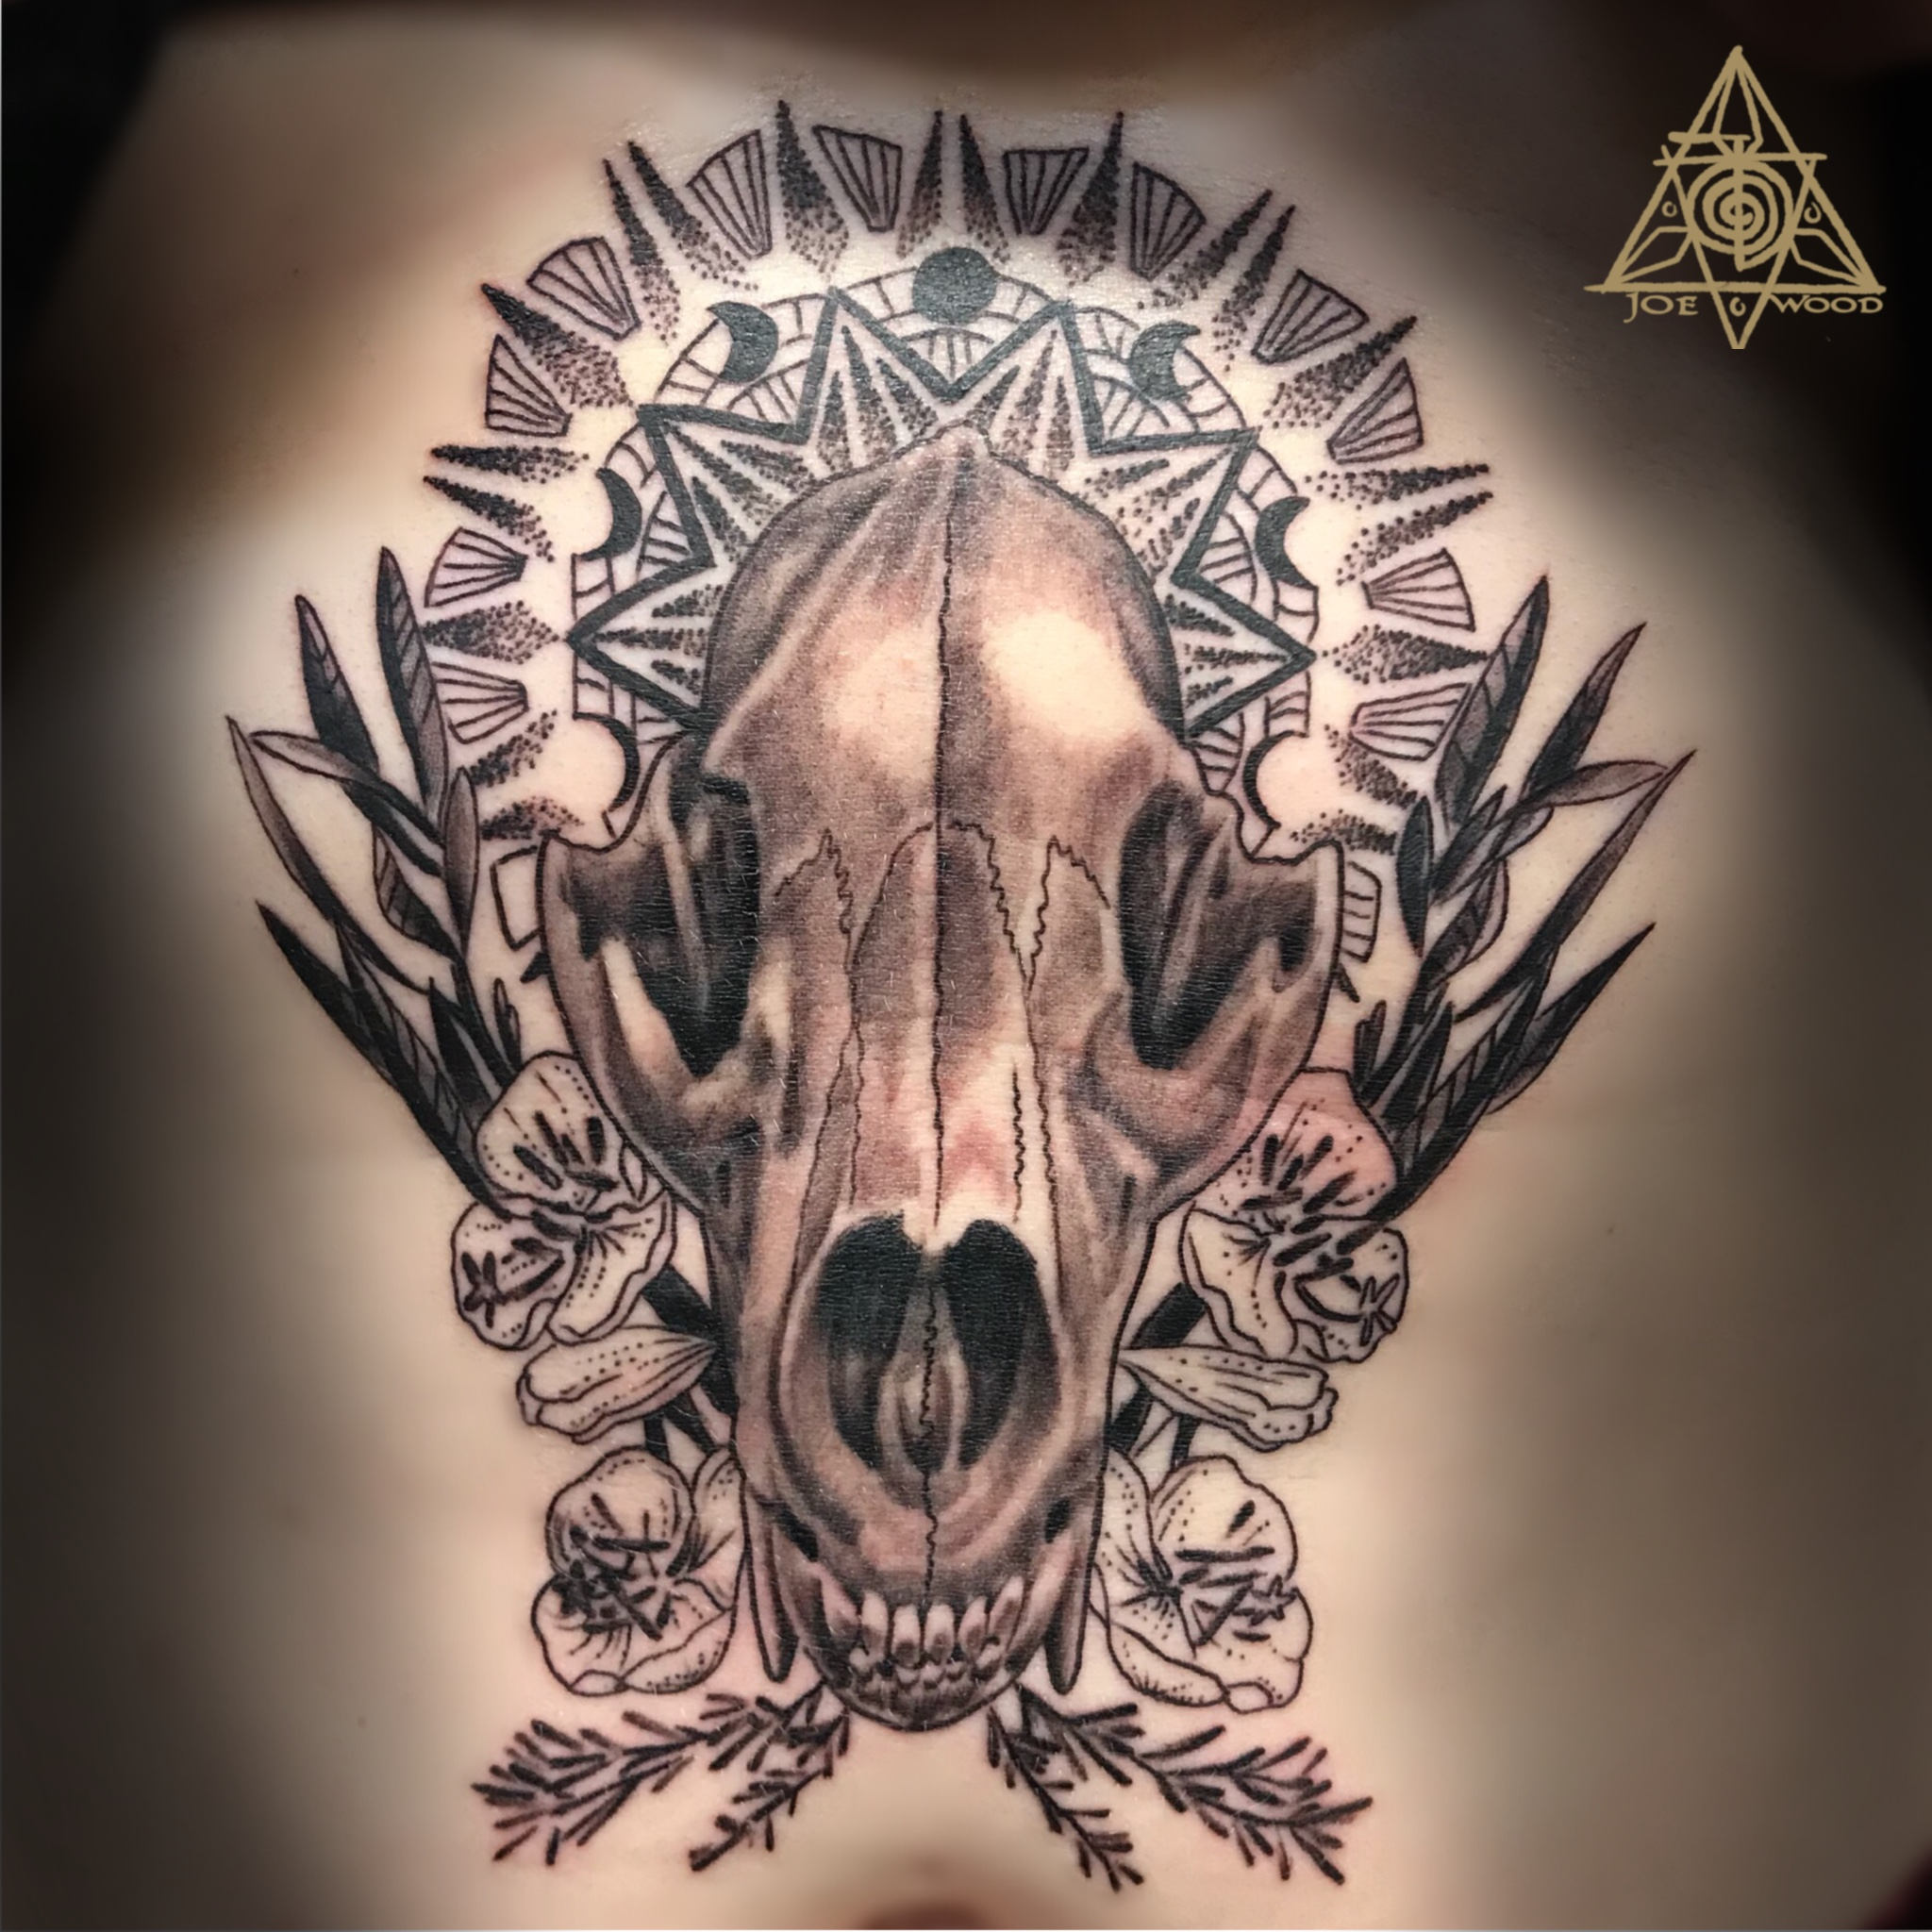 Dire wolf skull with geometry by Joe Wood